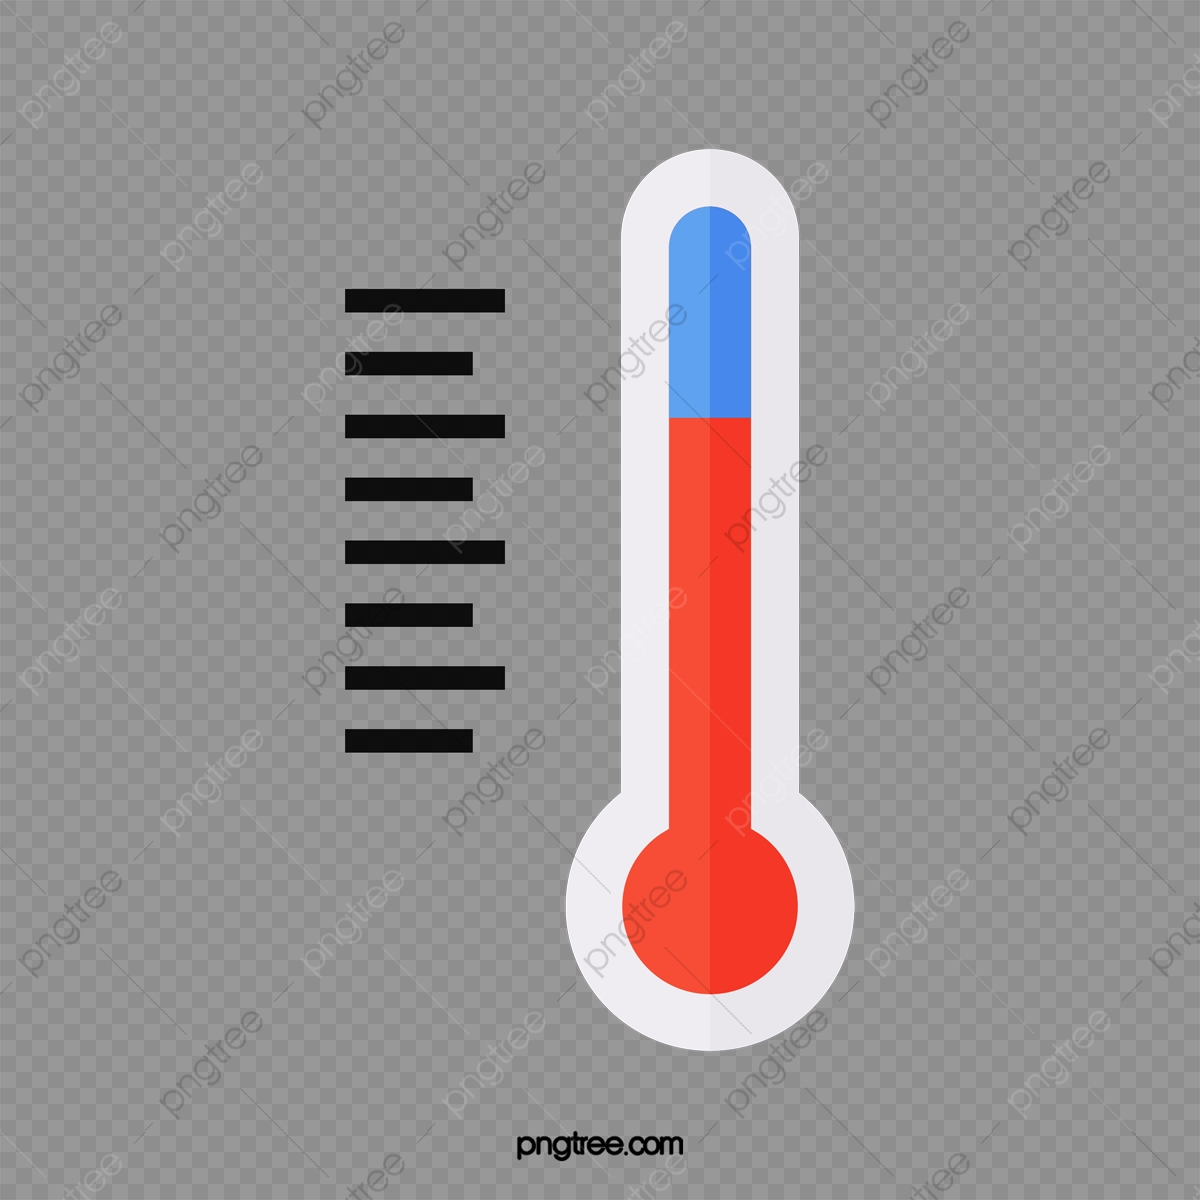 Clipart thermometer air temperature. Table png